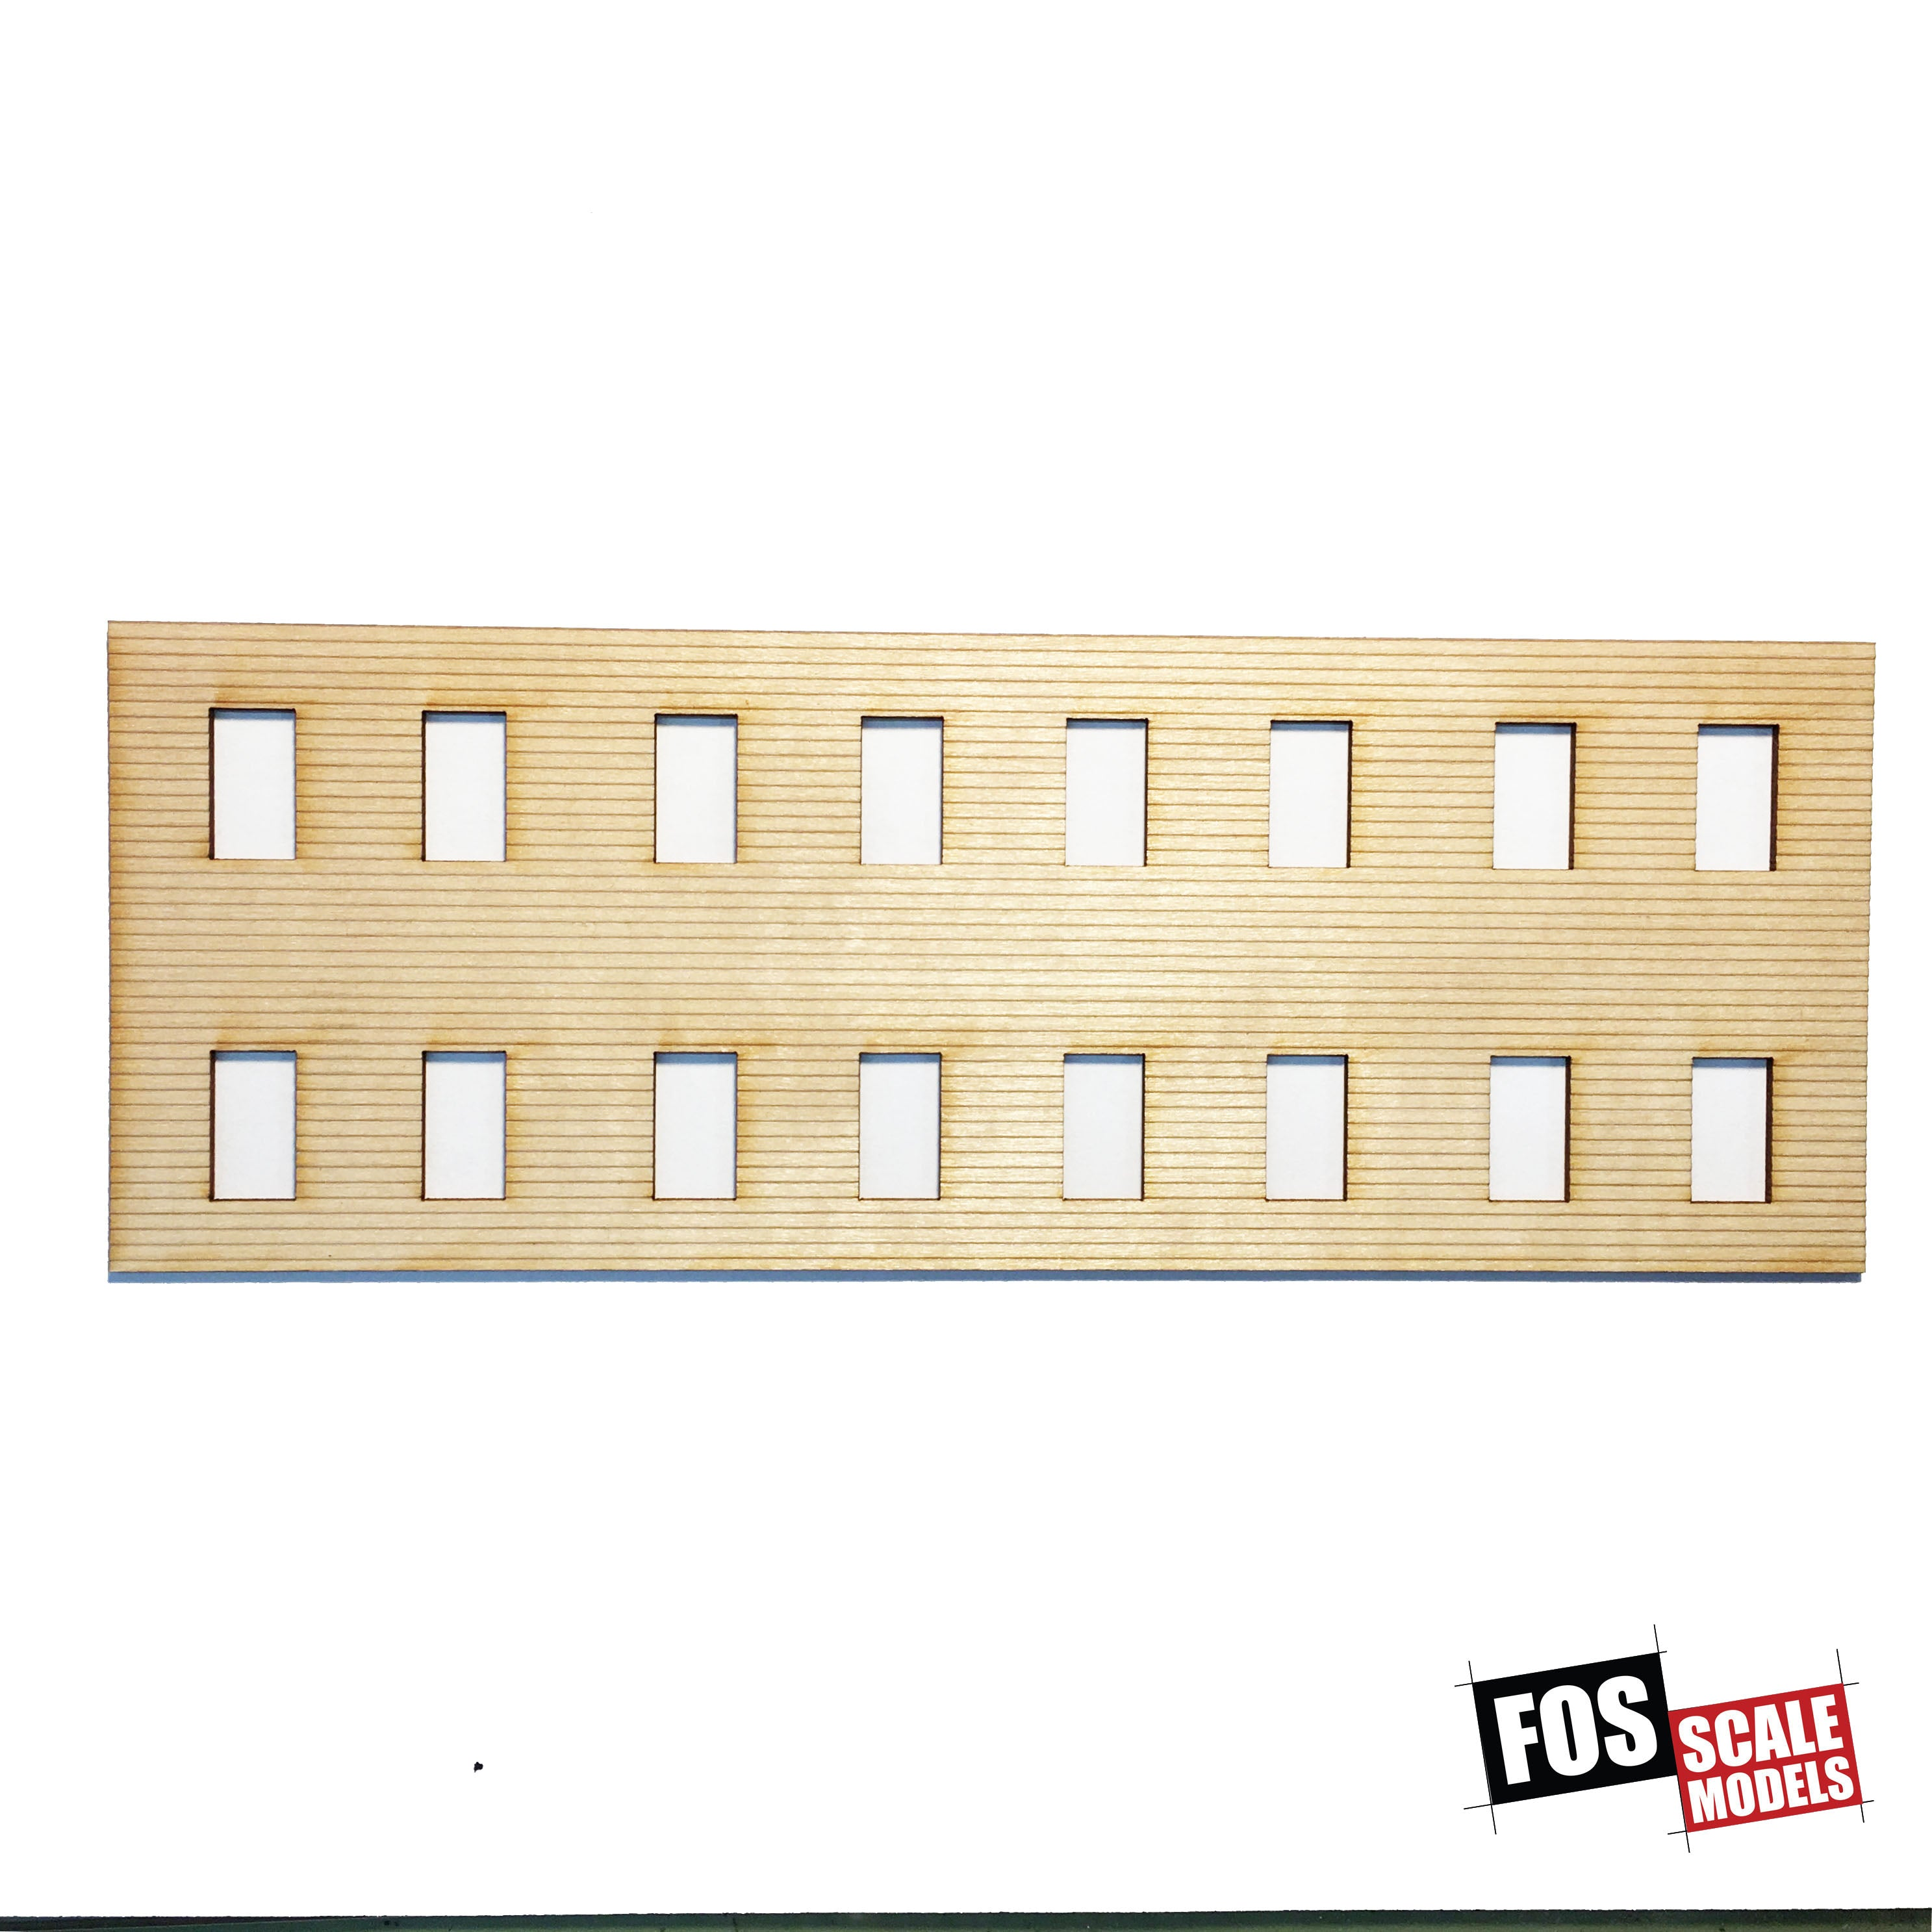 CLAPBOARD WALL SECTION - A 110 HO SCALE